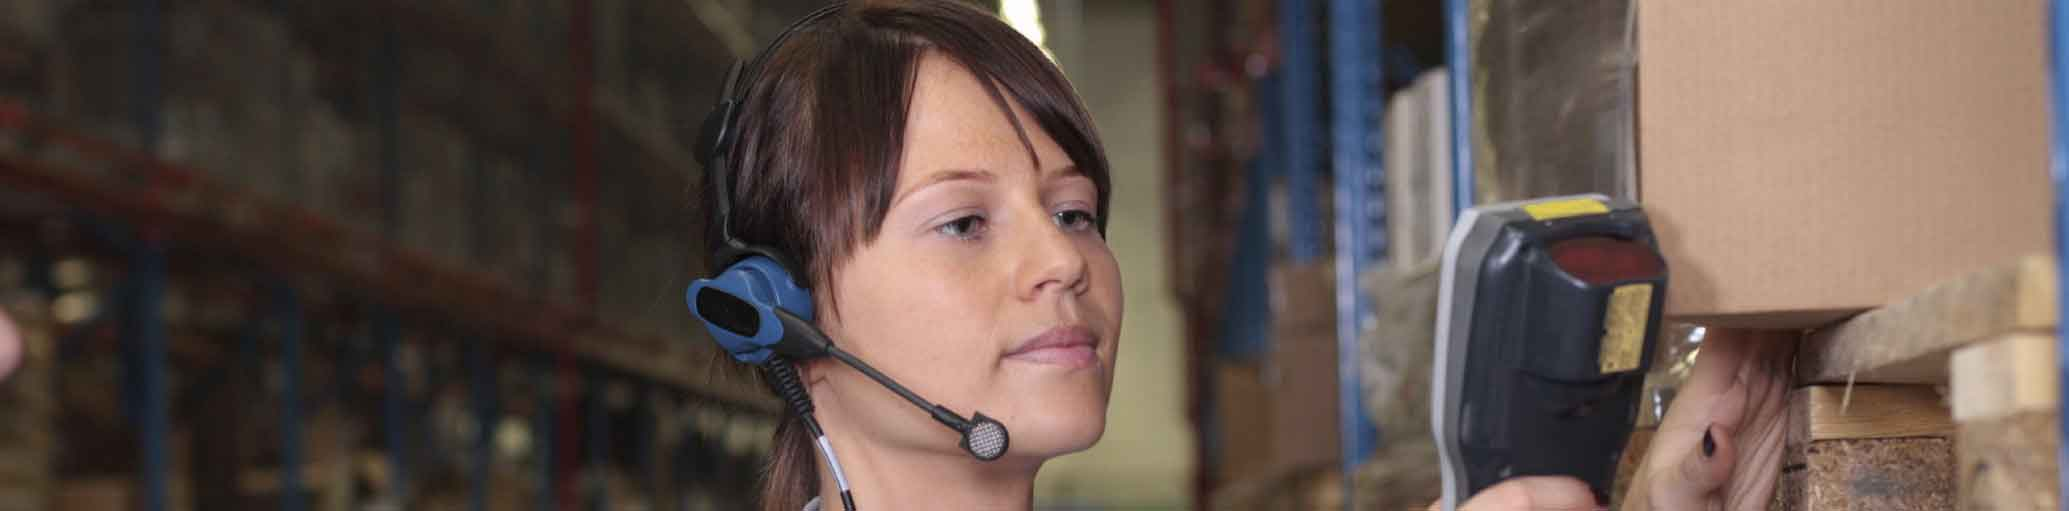 Canada Bearings Customized Call Center